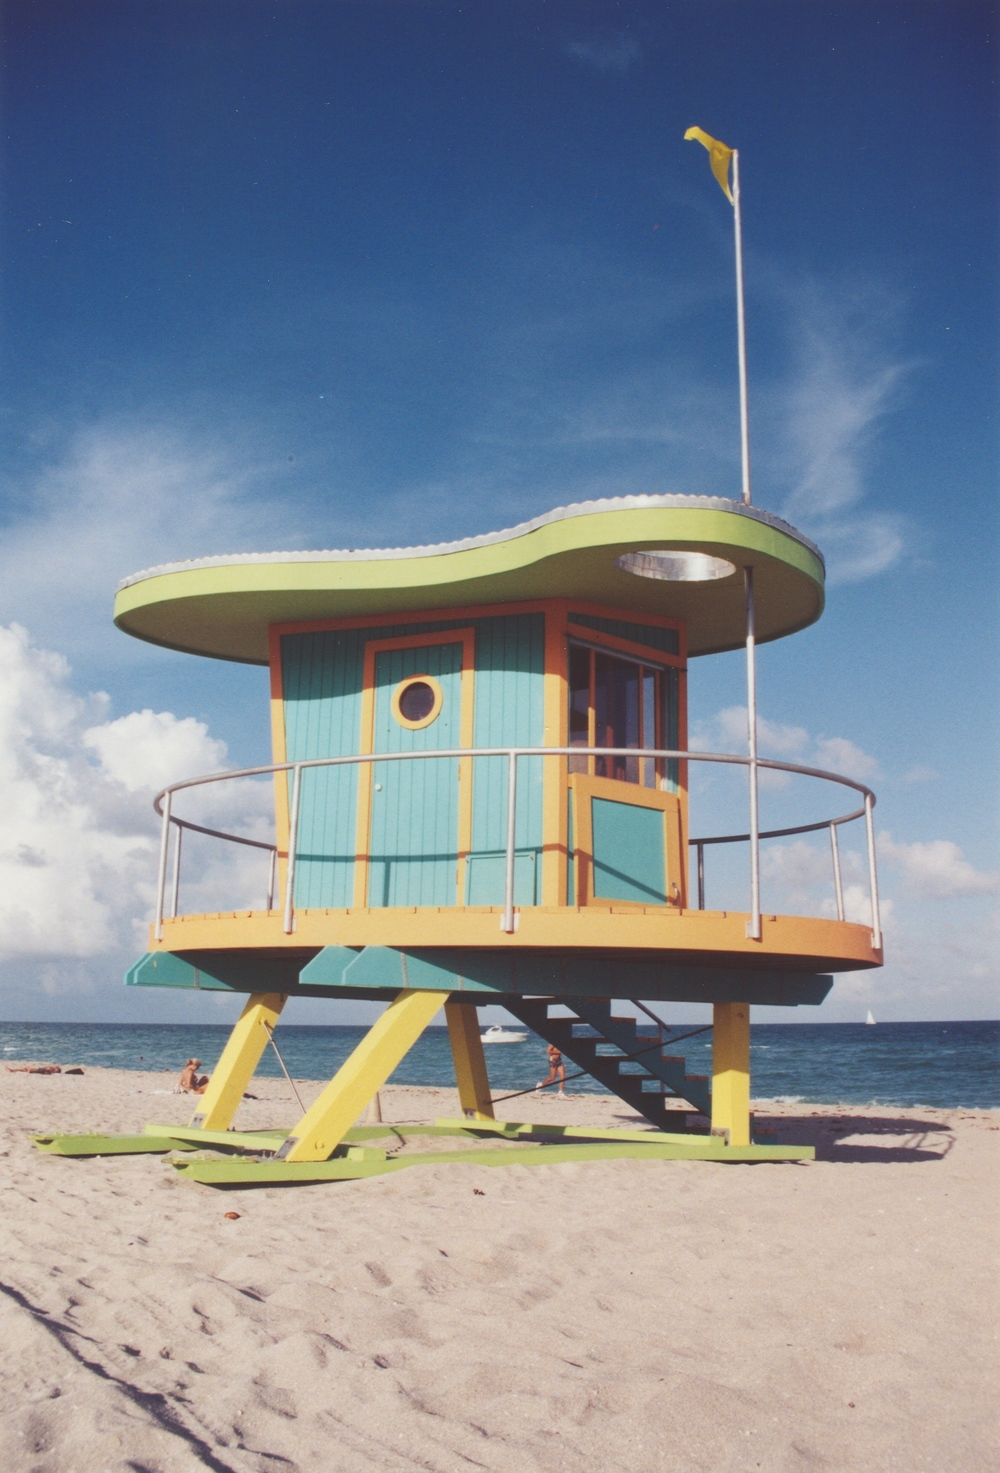 LIFE GUARD STAND 01 A.jpg